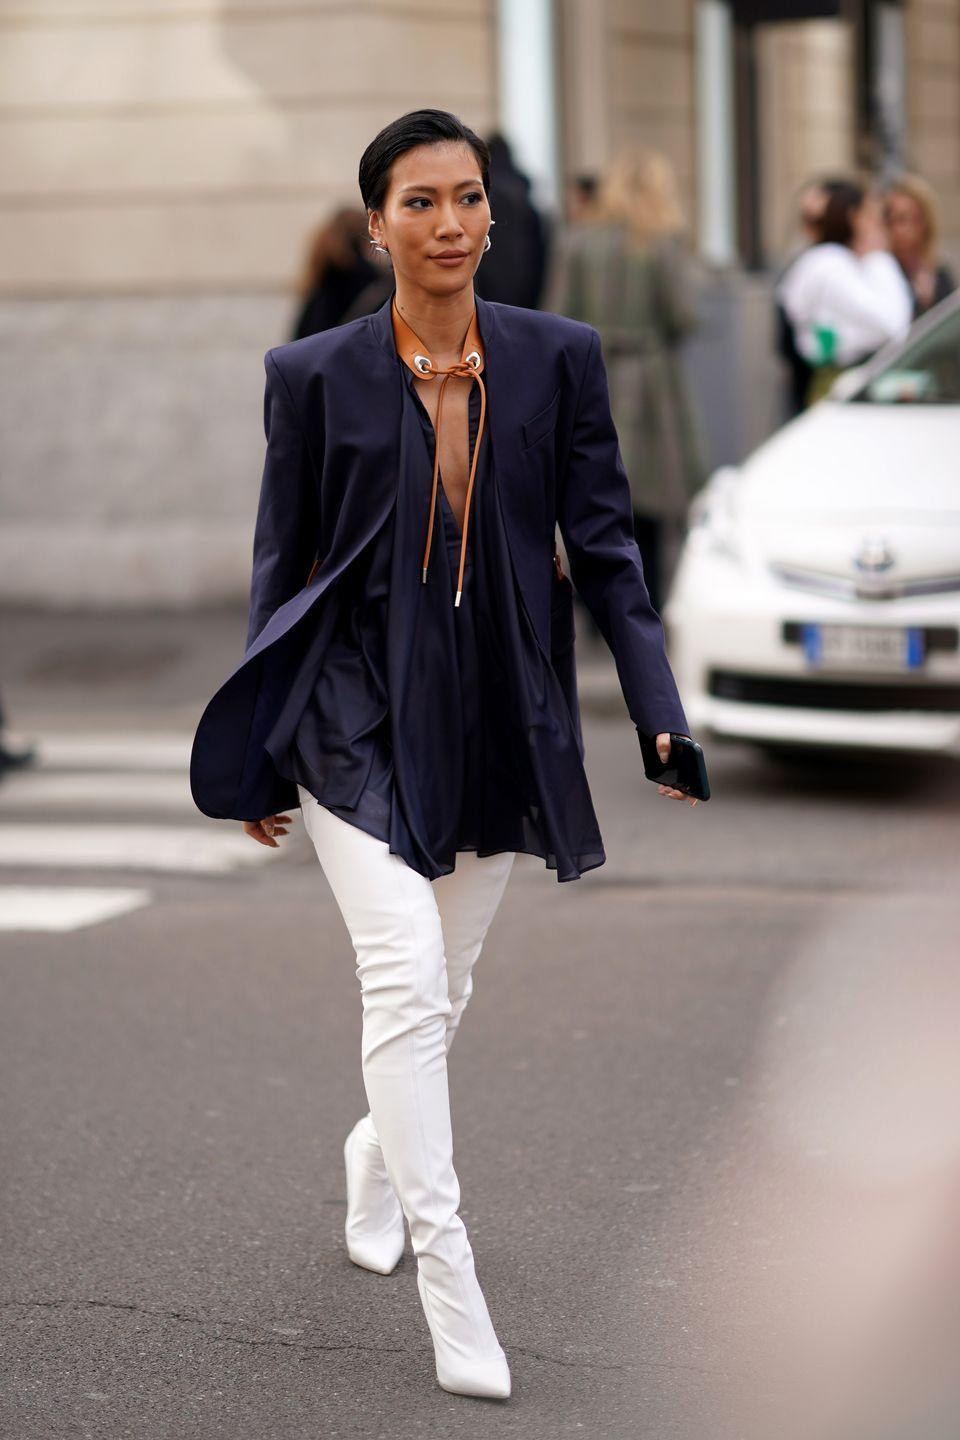 <p>A top with a cutout or a revealing neckline really amps up your look. Bright-white boots will definitely get you noticed when you're walking down the sidewalk. (Just make sure they don't get scuffed!) </p>